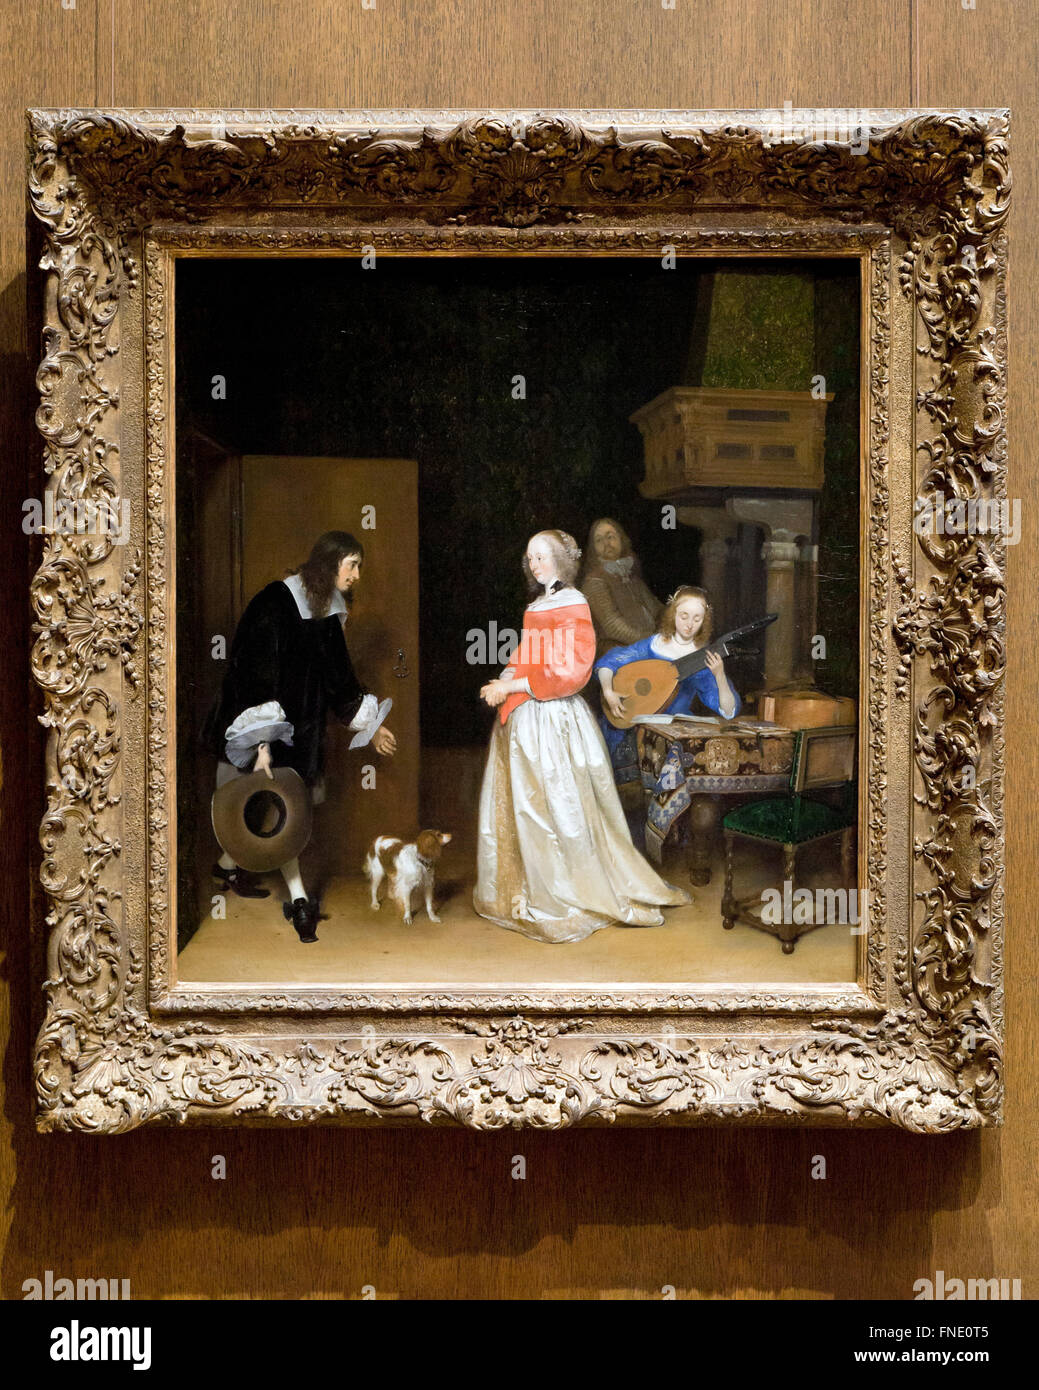 The Suitor's Visit by Gerard ter Borch the Younger, circa 1658 - Smithsonian National Gallery of Art, Washington, - Stock Image